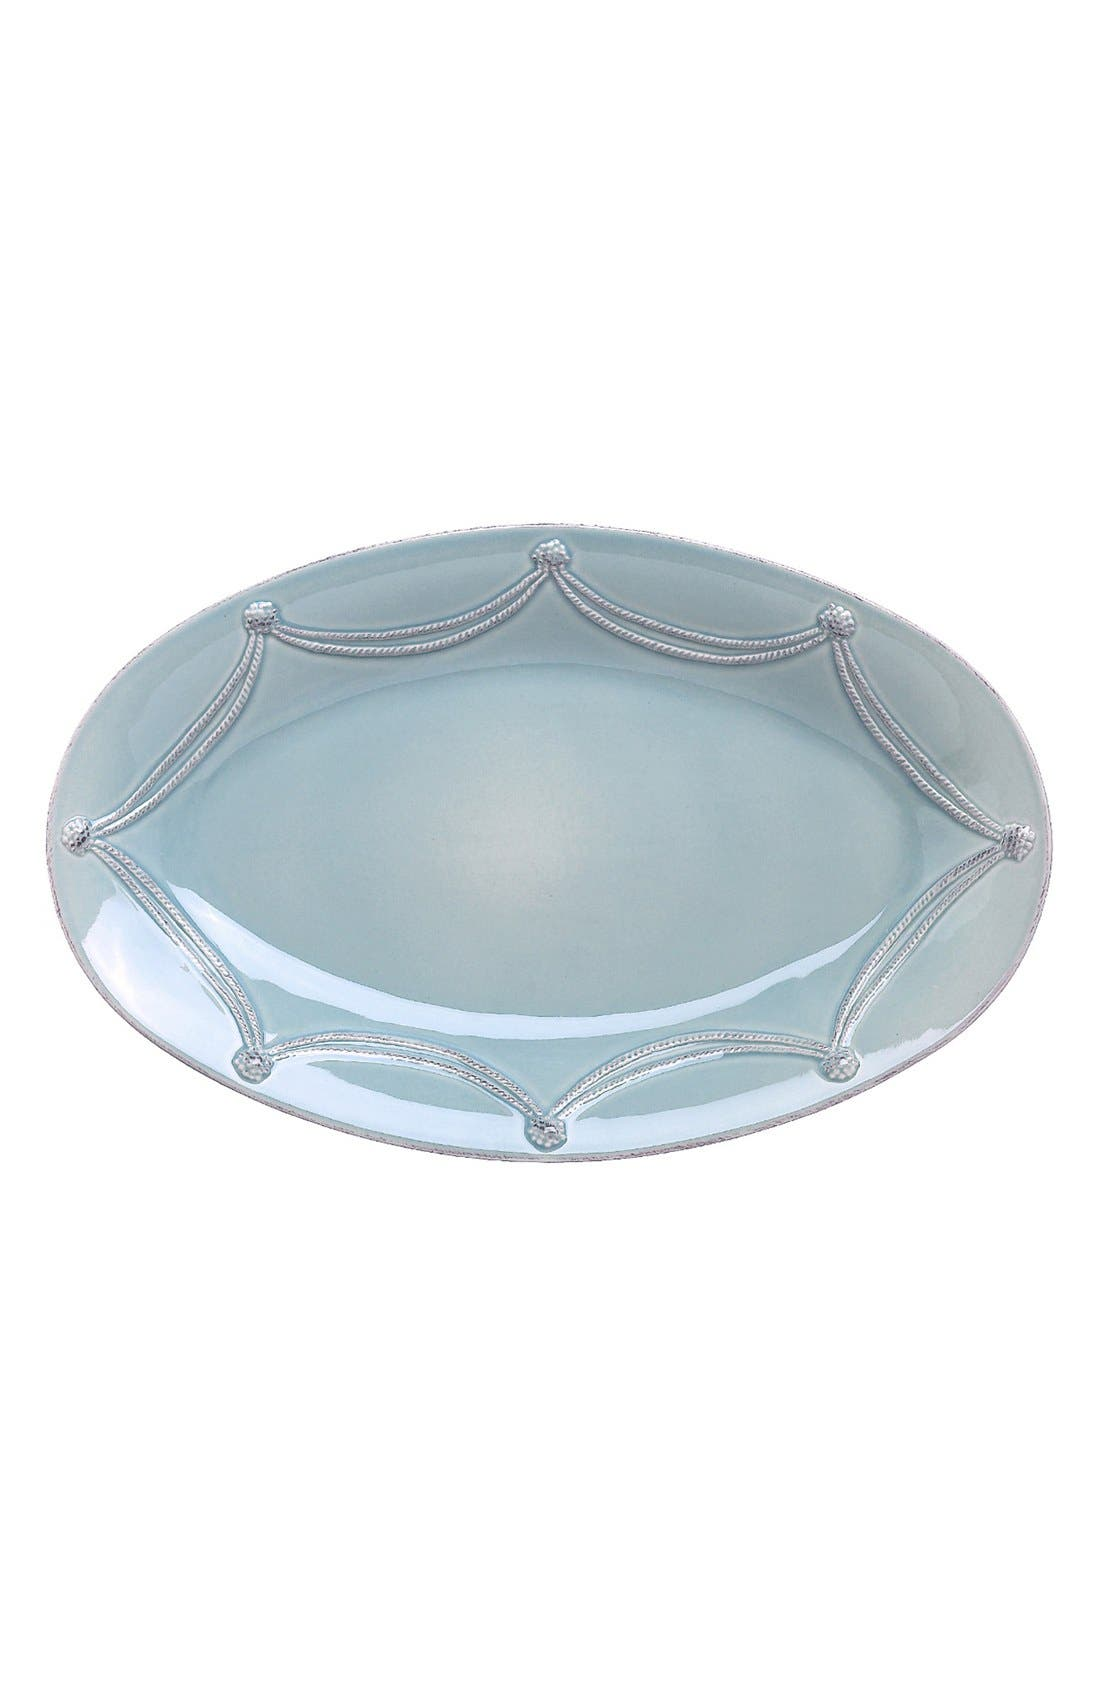 'Berry and Thread' Oval Platter,                             Main thumbnail 2, color,